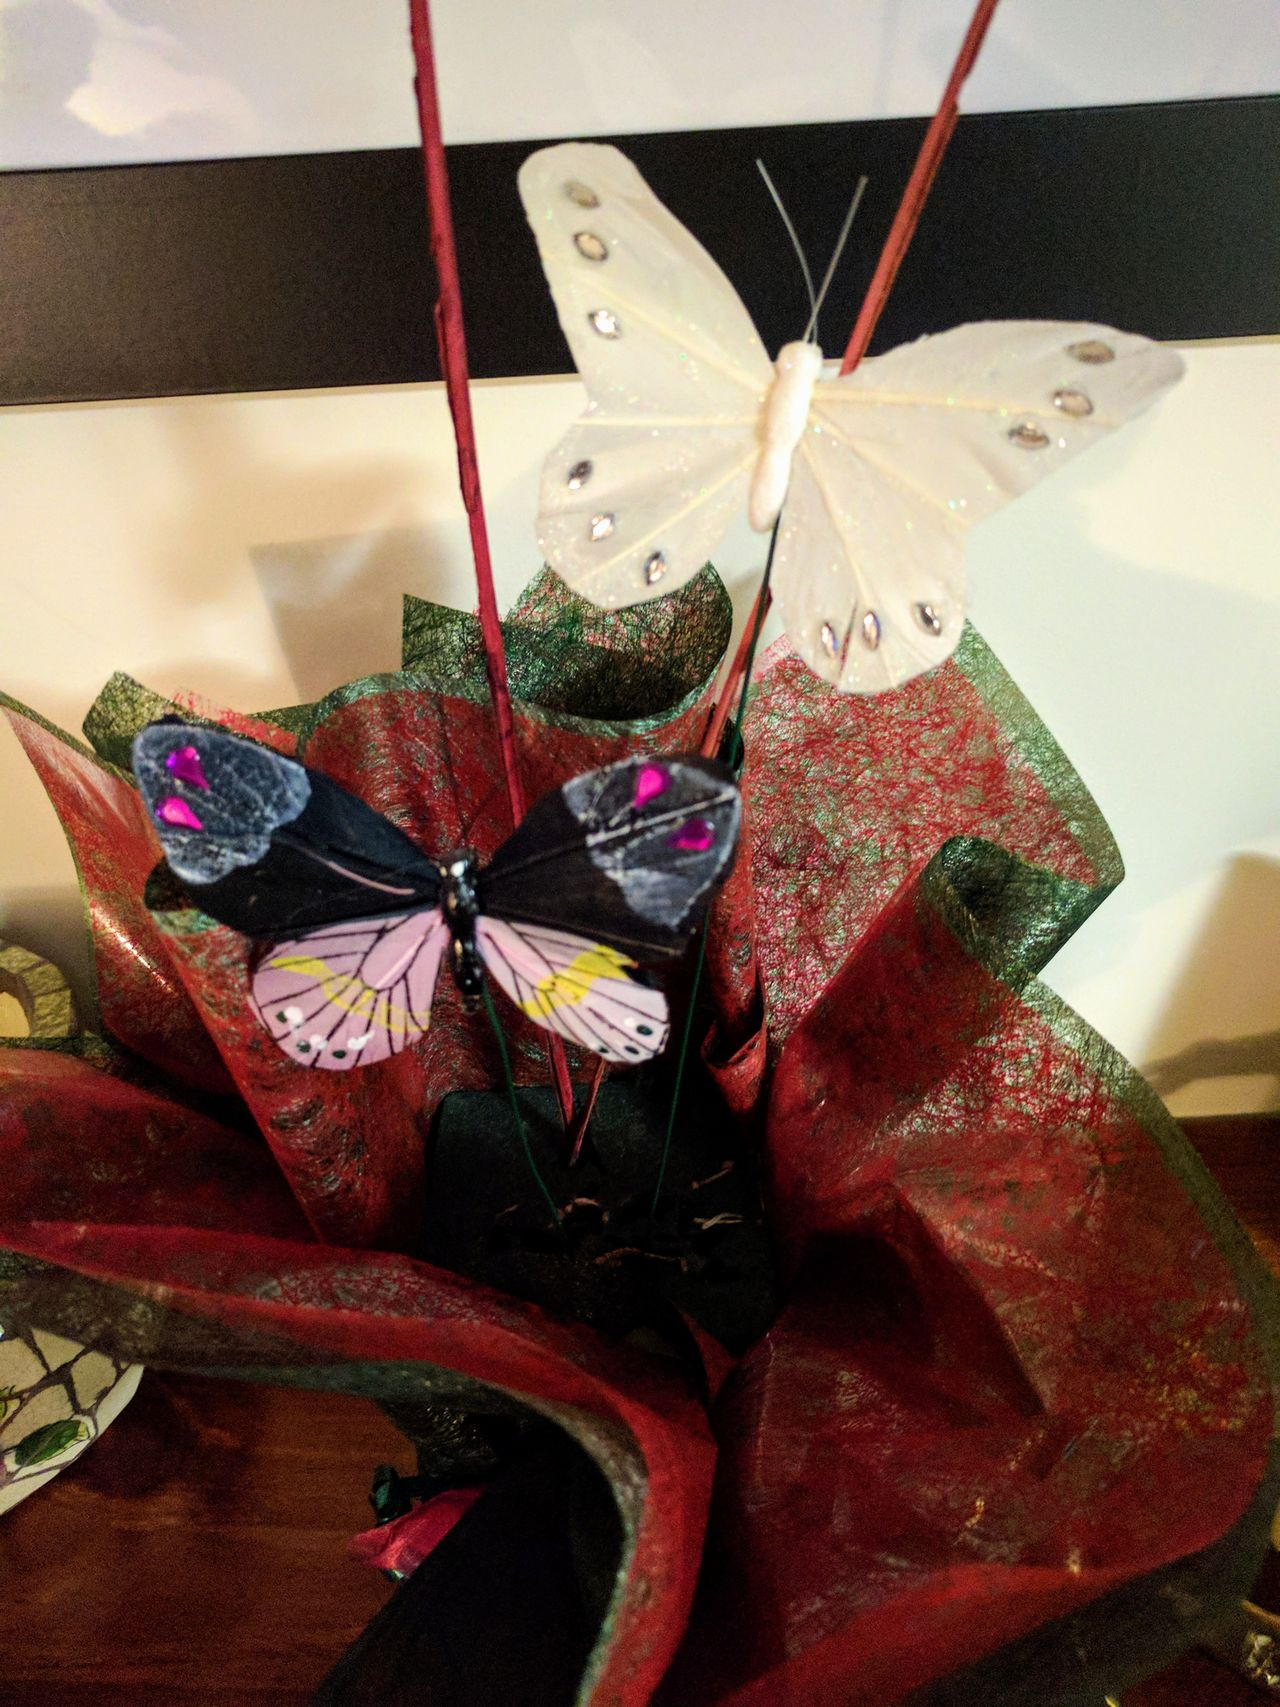 Crafts Multi Colored Close-up No People Indoors  Mobile Photography Mobilephotography Decorations Creativity Handmade Papercraft Butterfly ❤